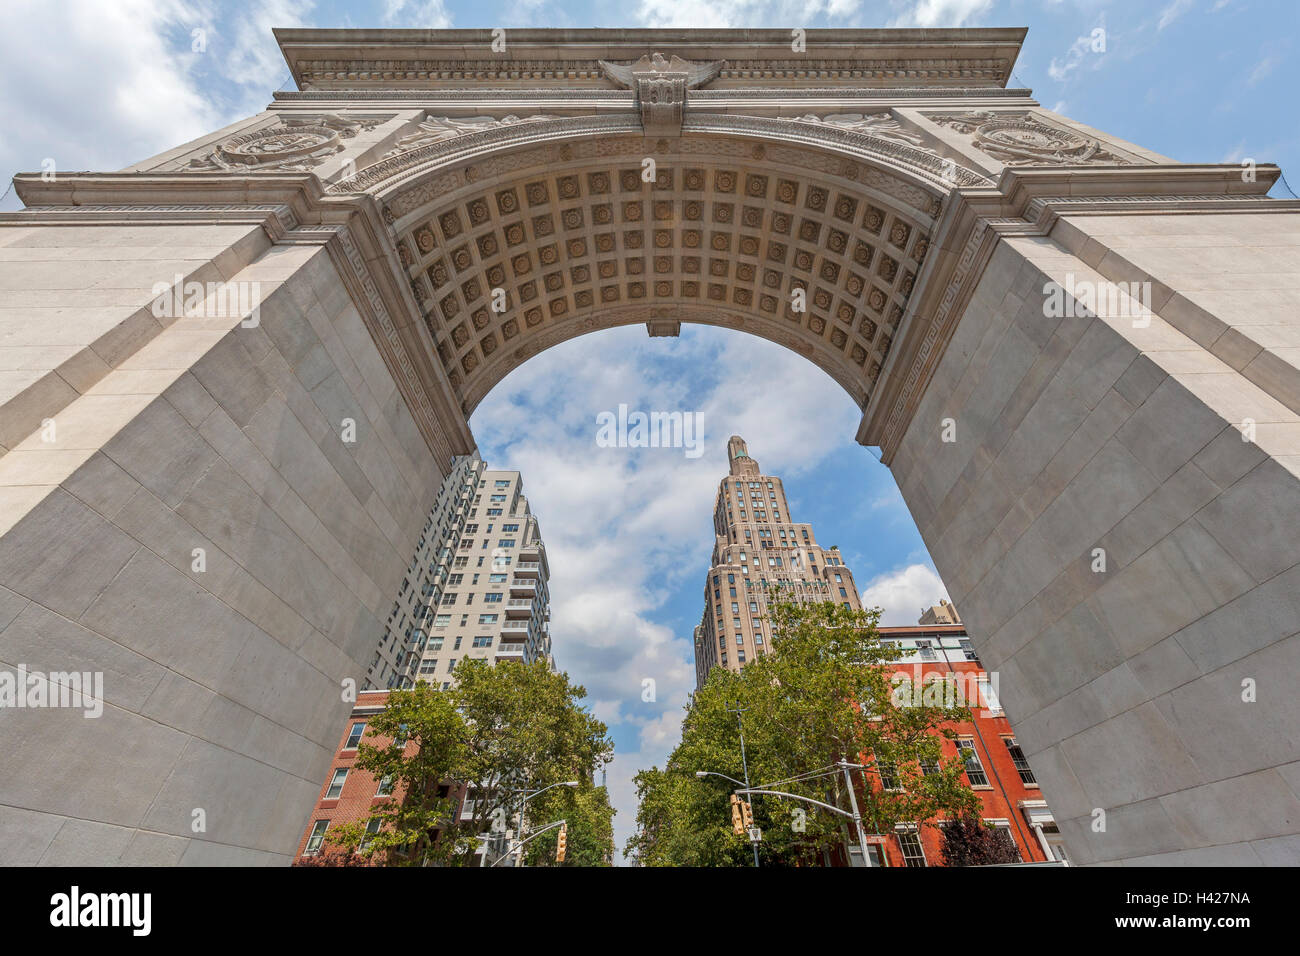 Washington Square Park Arch in New York City. - Stock Image